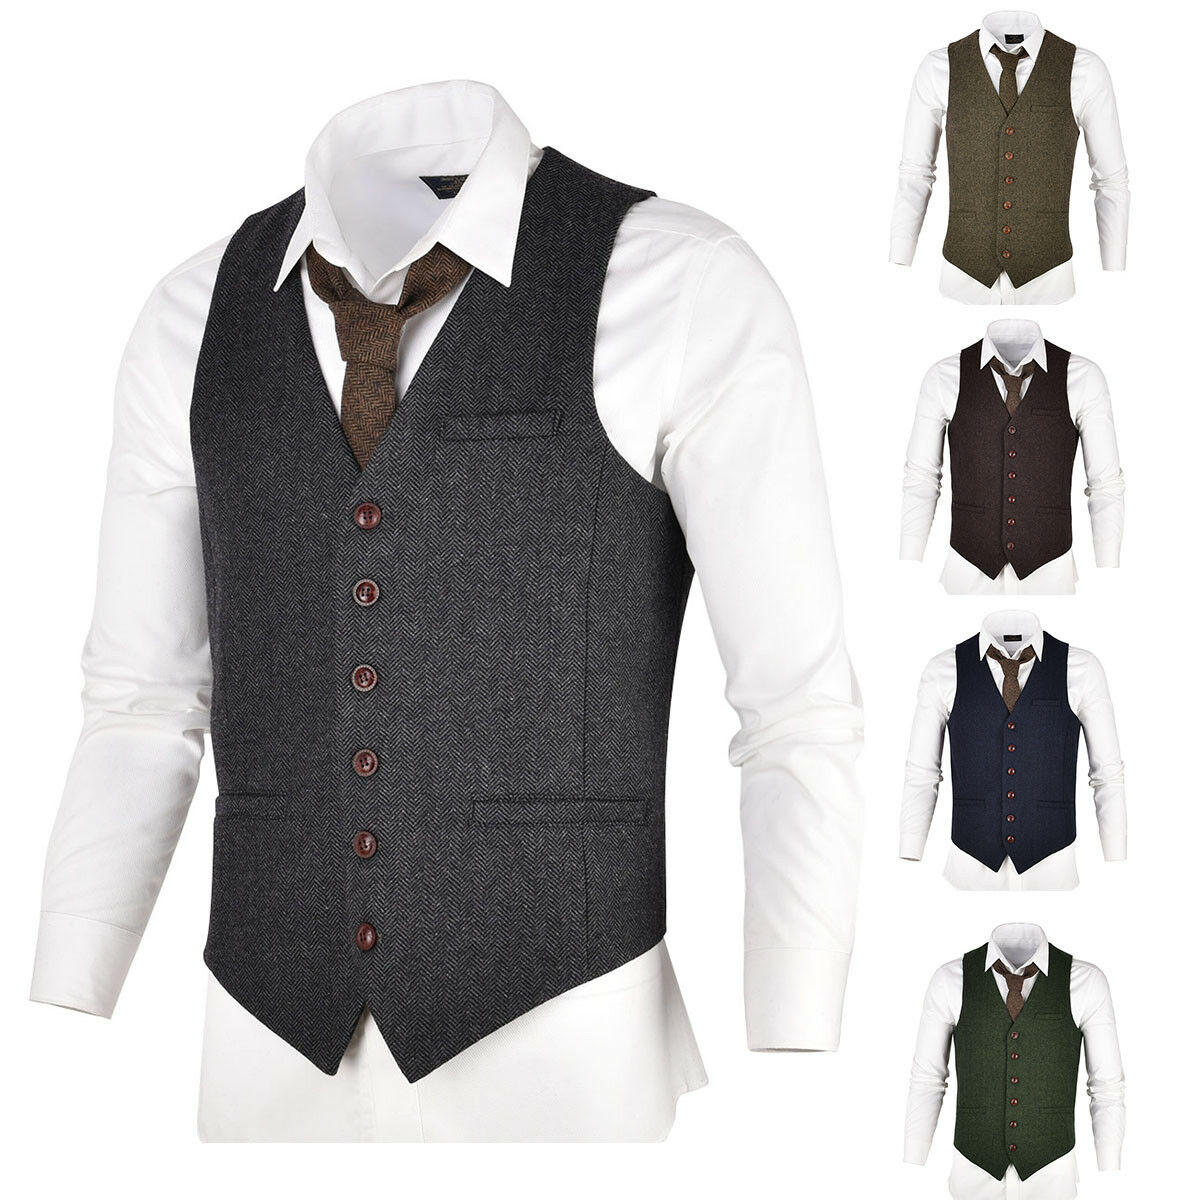 VOBOOM Mens Wool Blend Suit Waistcoat Vest Gilet Slim Fit Business Leisure Vests